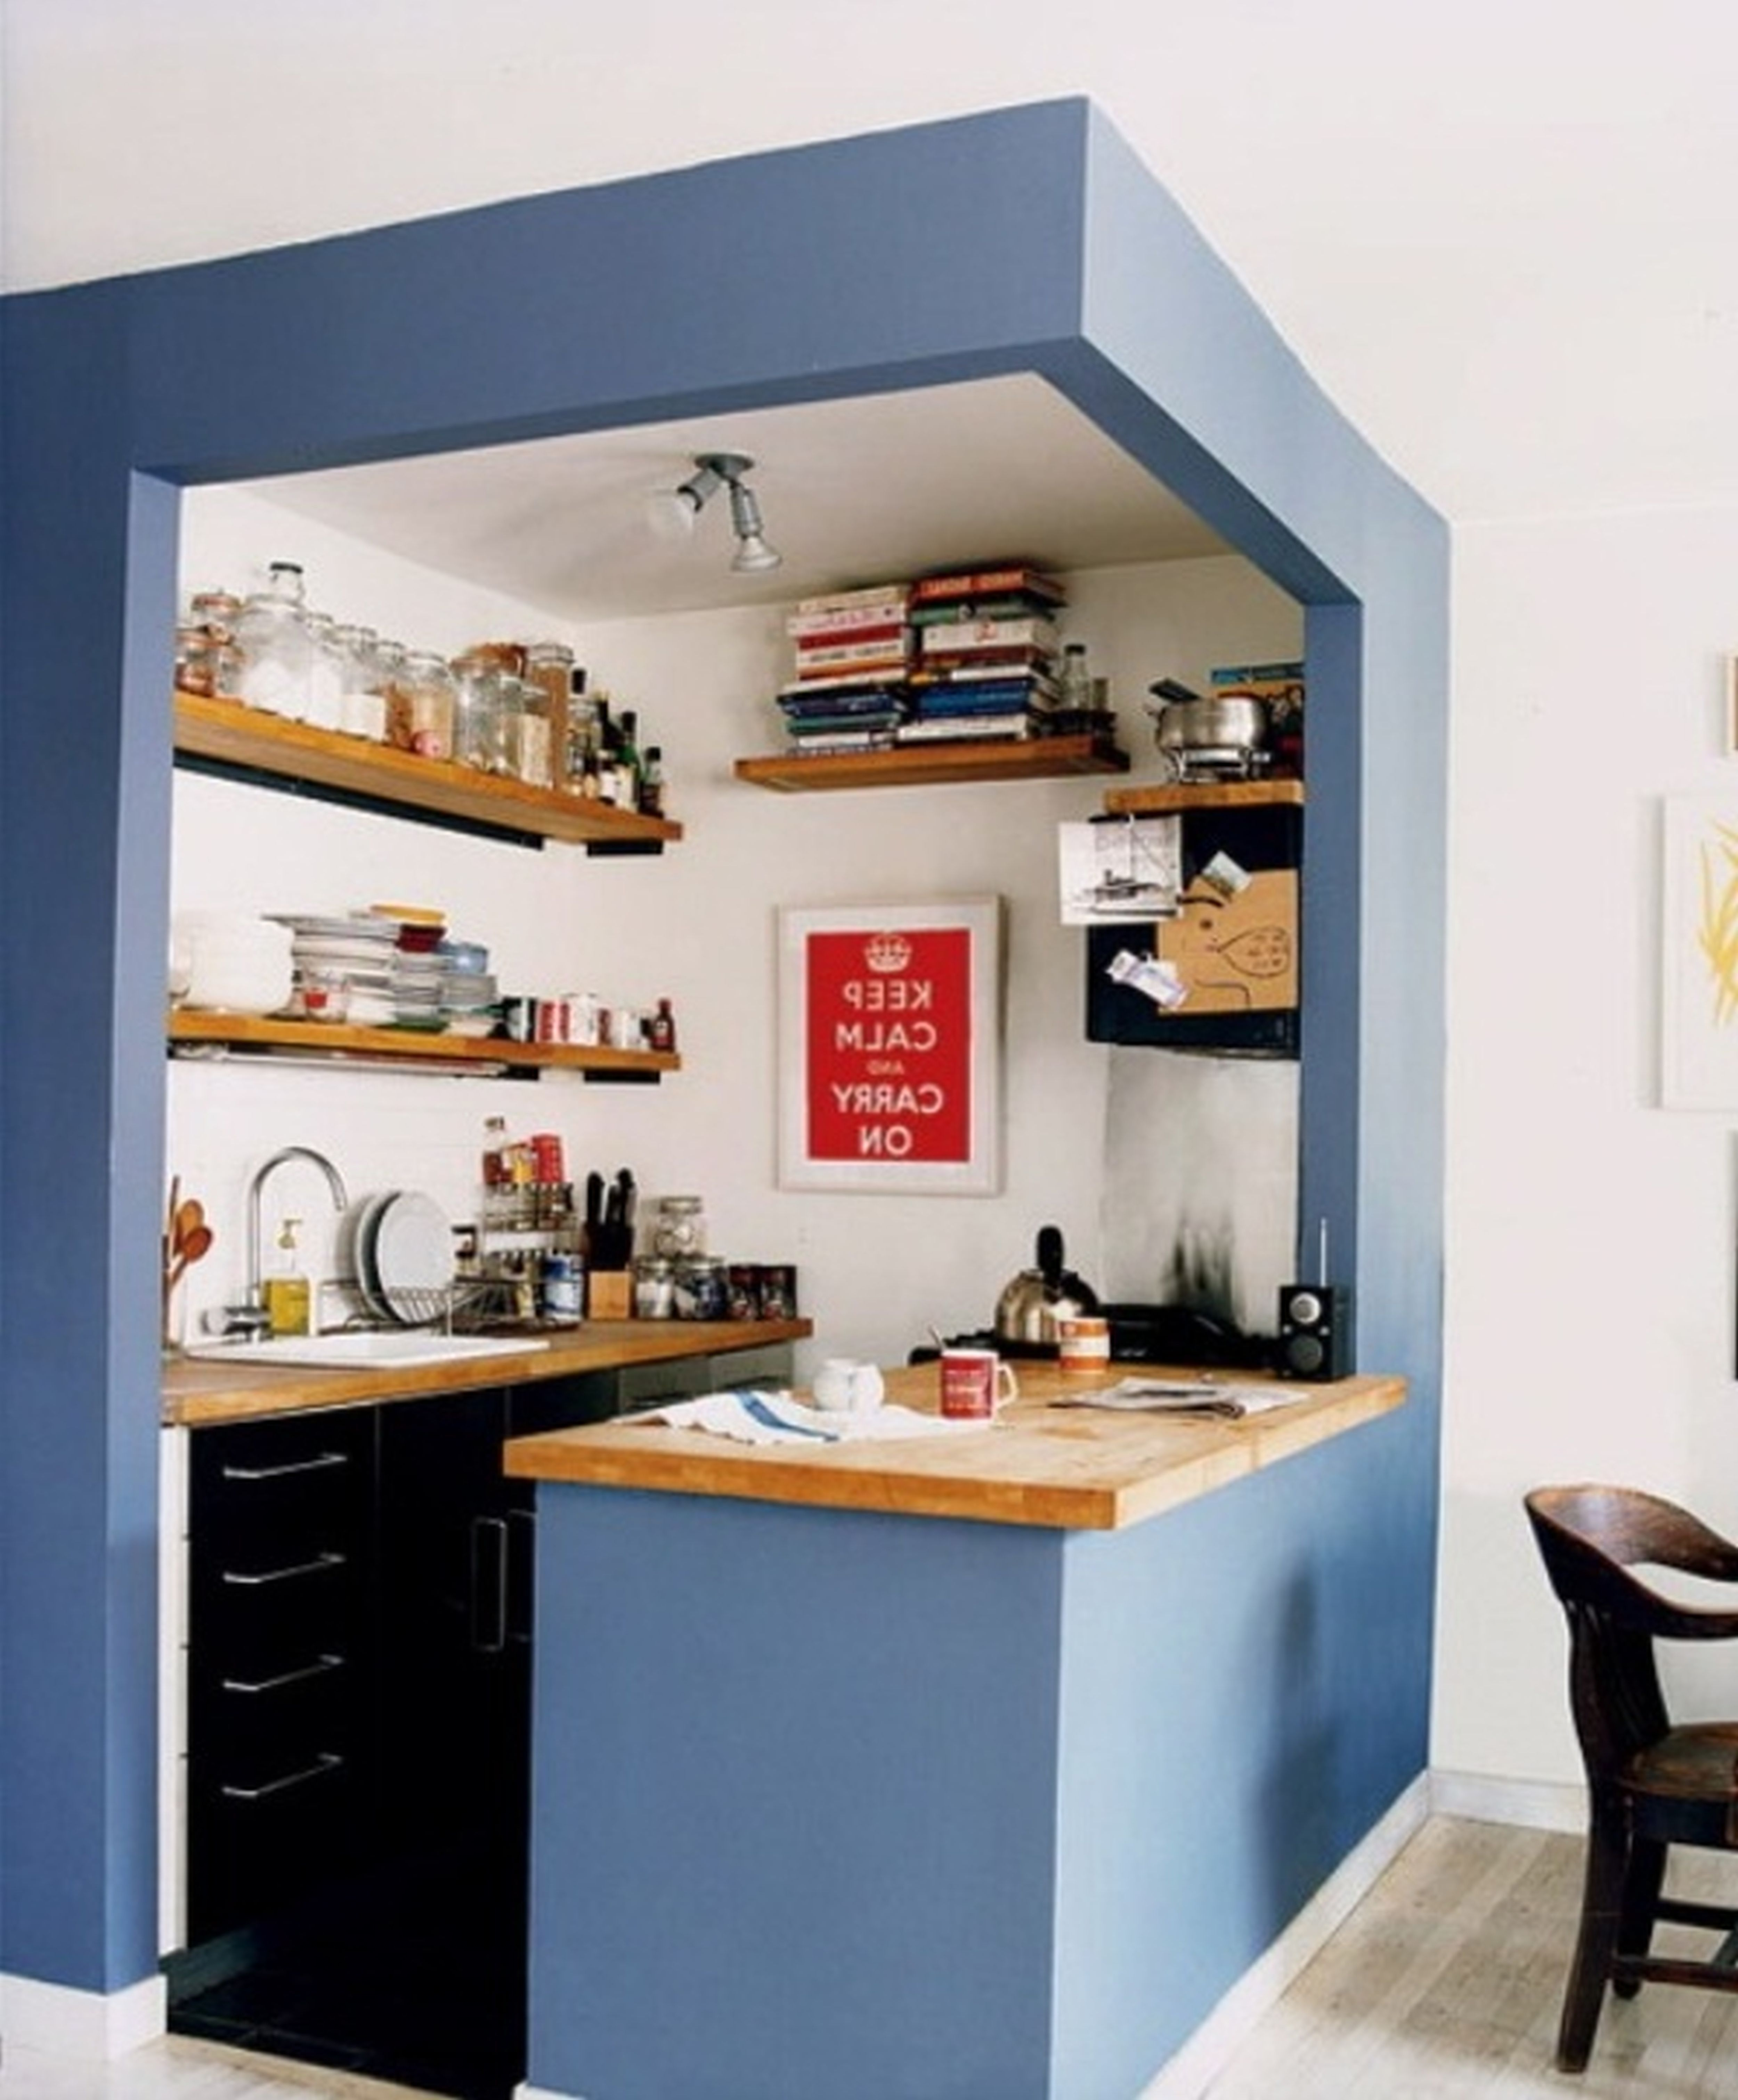 Idea for a small kitchen space which would fit into the corner of ...